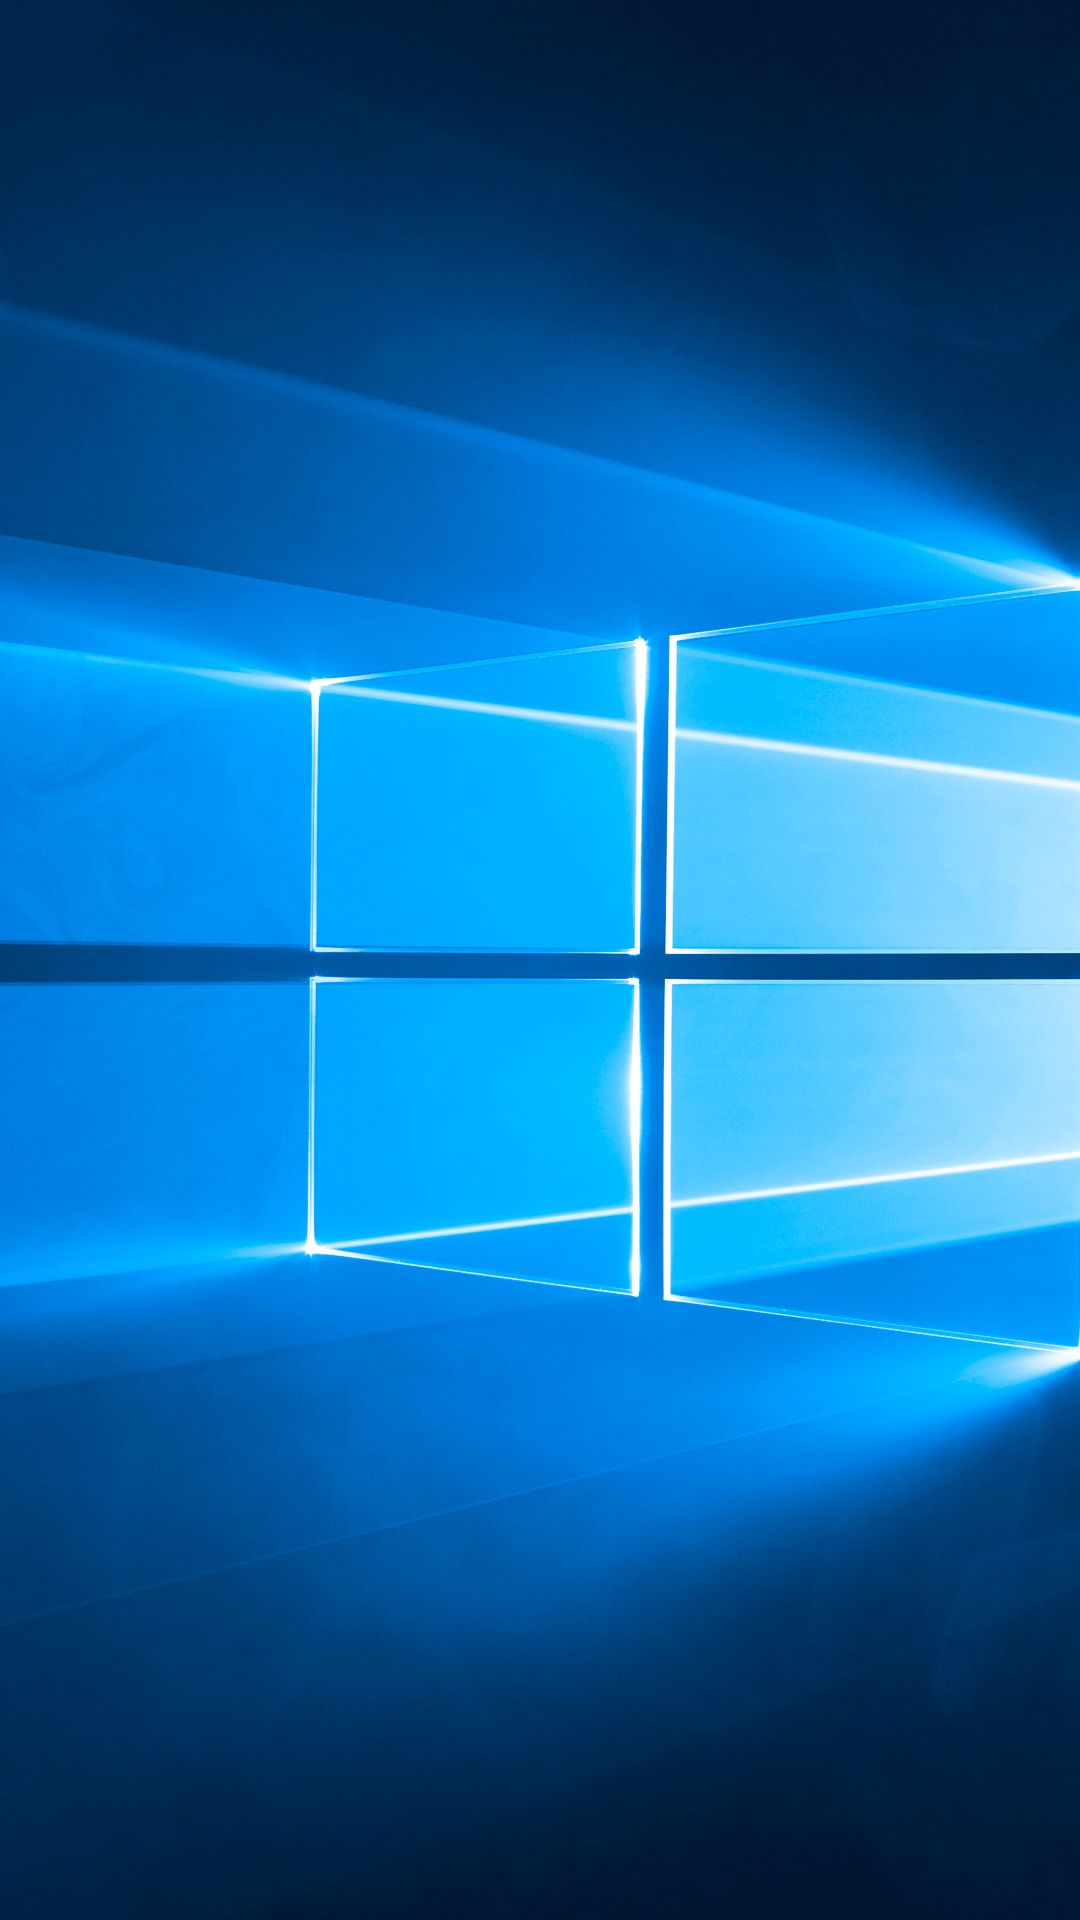 Download Hd Wallpapers For Windows 10 Hdwallpapershits Com